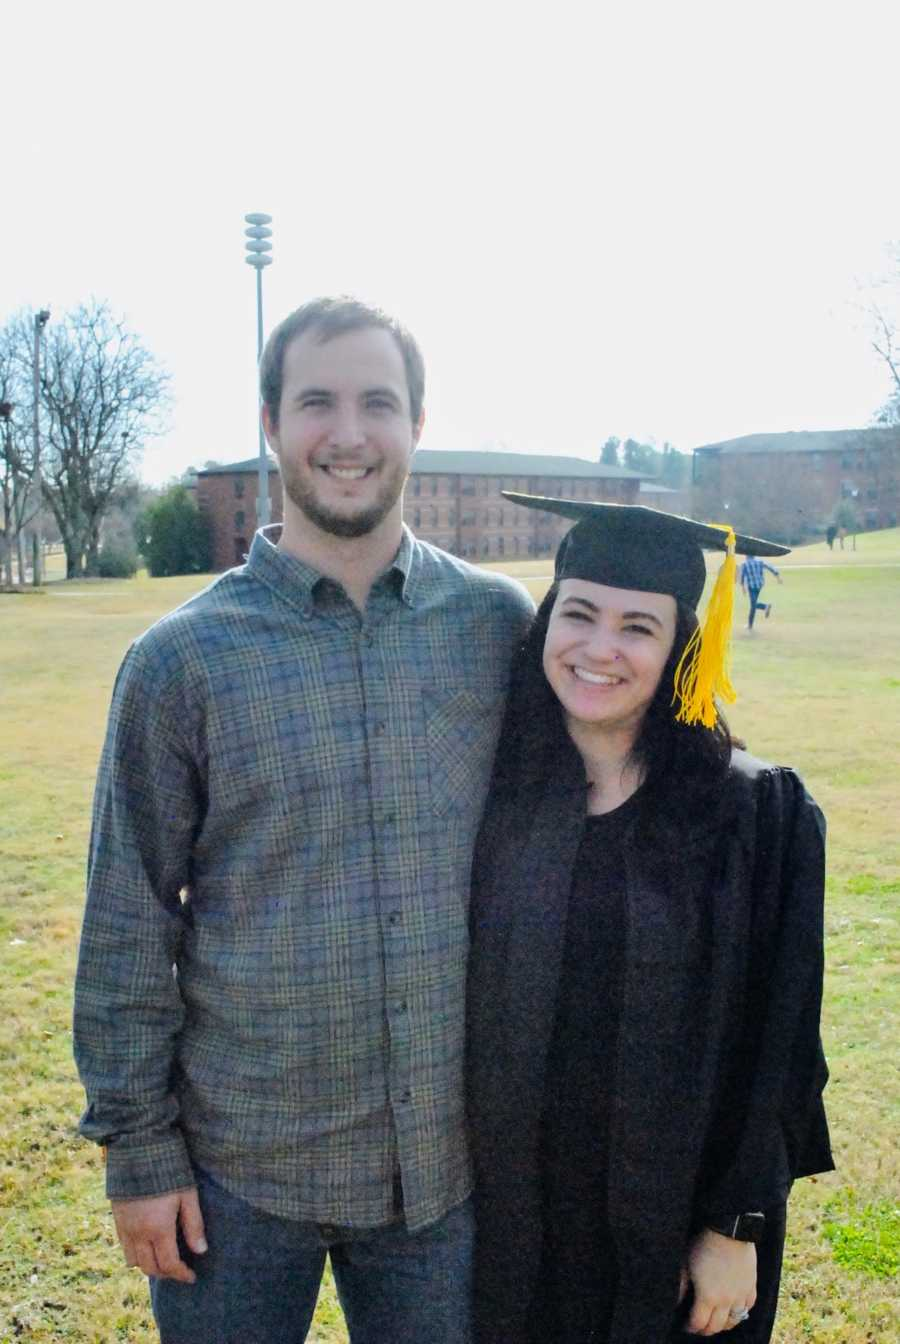 A young pregnant couple smiling after graduation